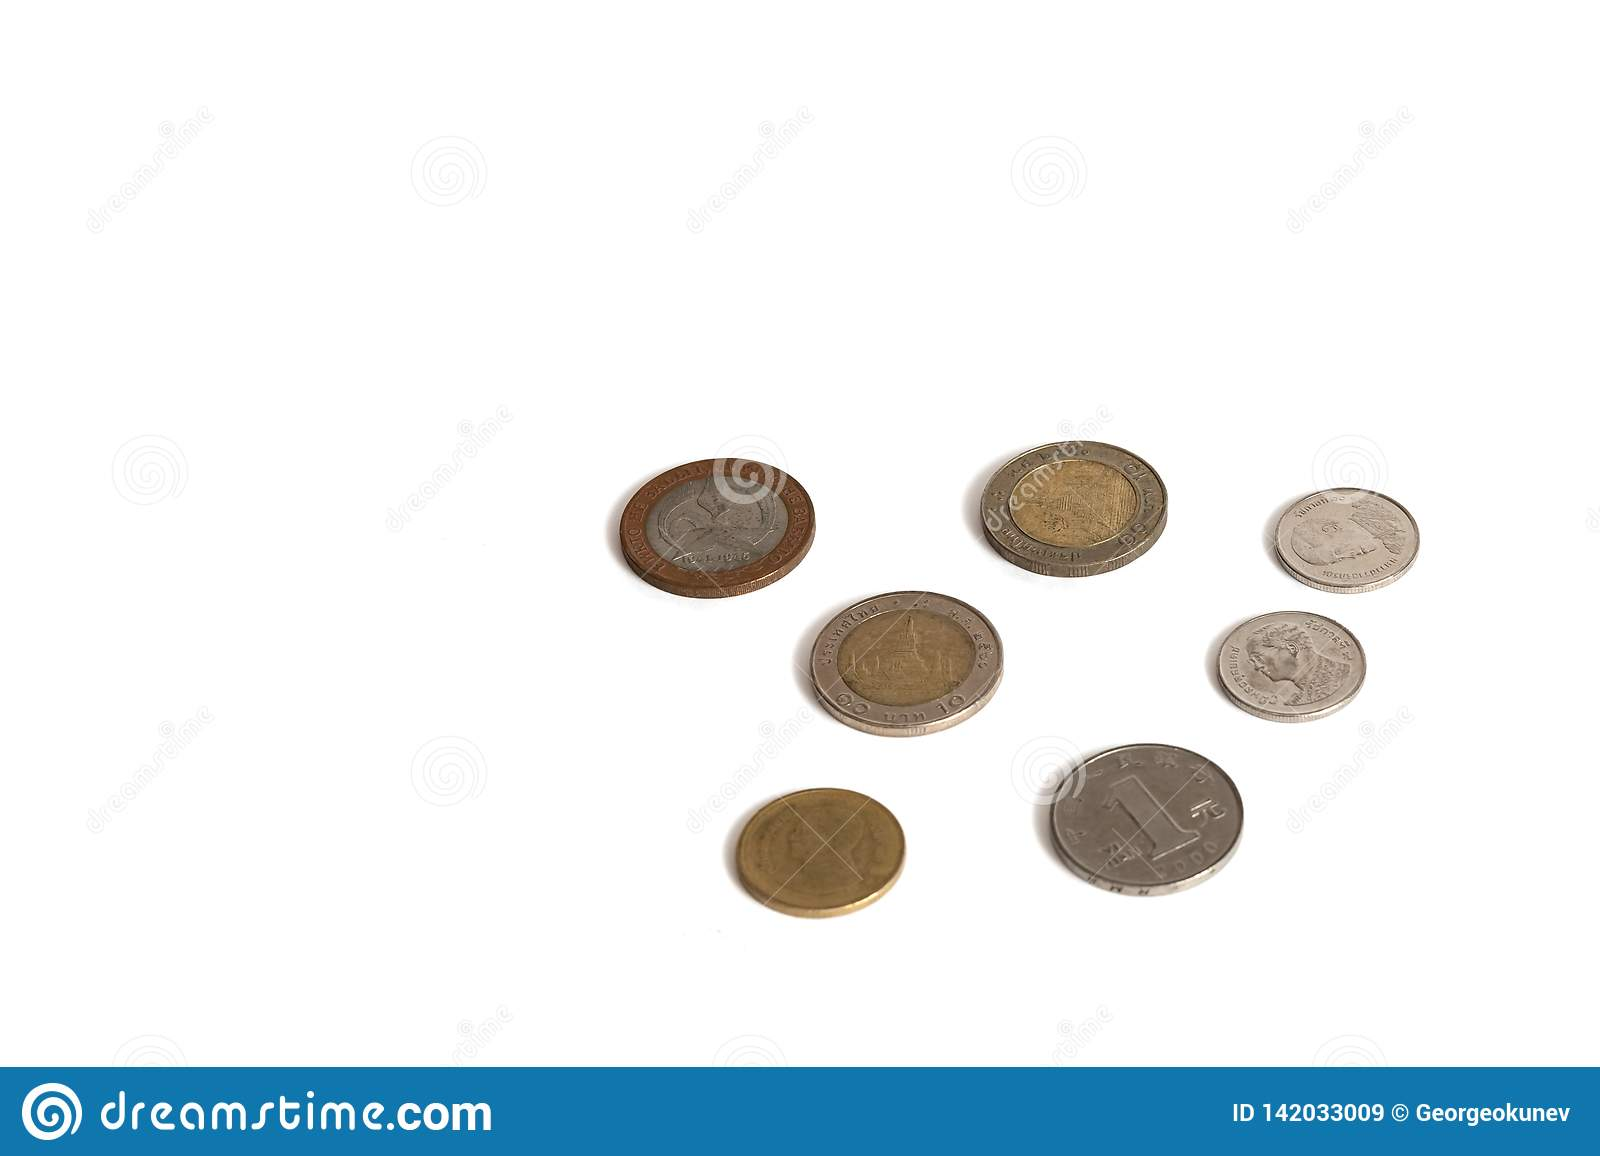 Coins isolated on a white background of different values